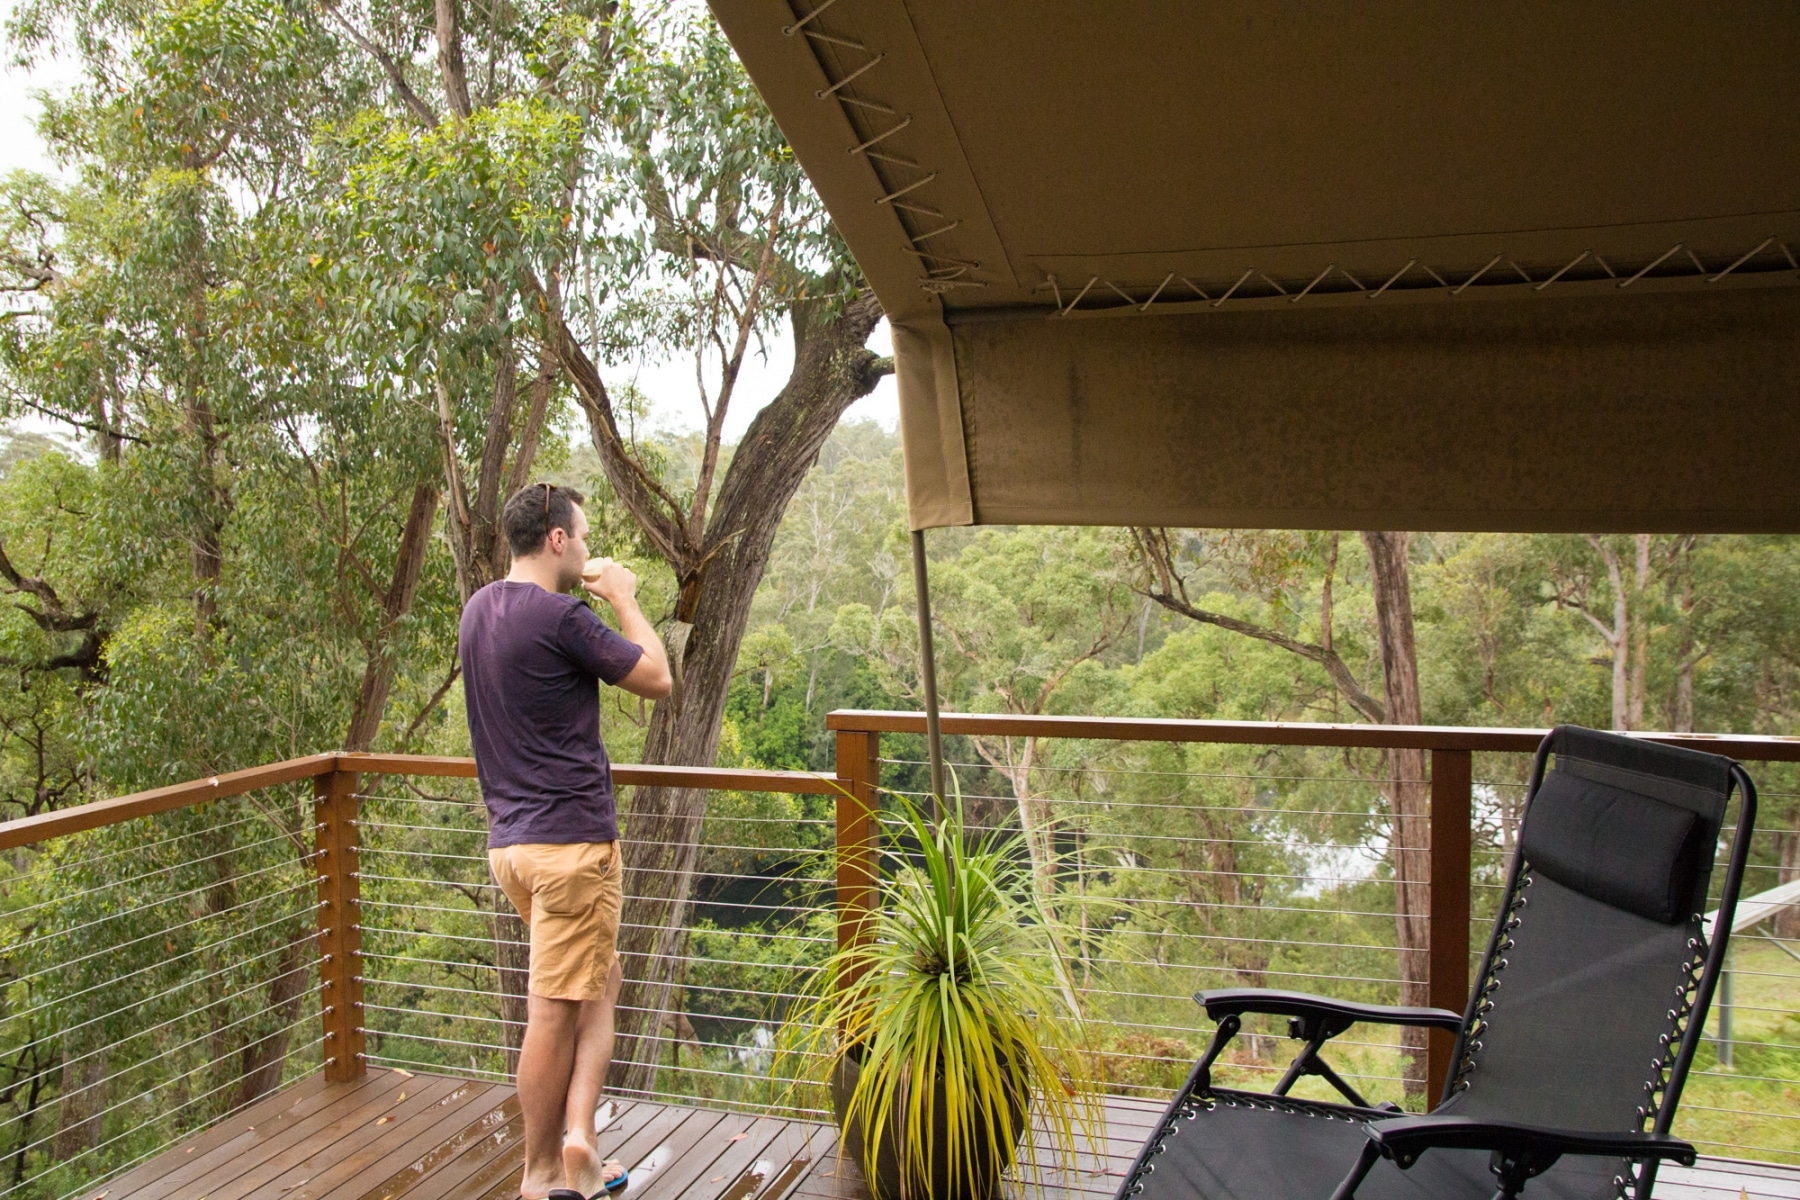 Man looking out at view of trees from a balcony